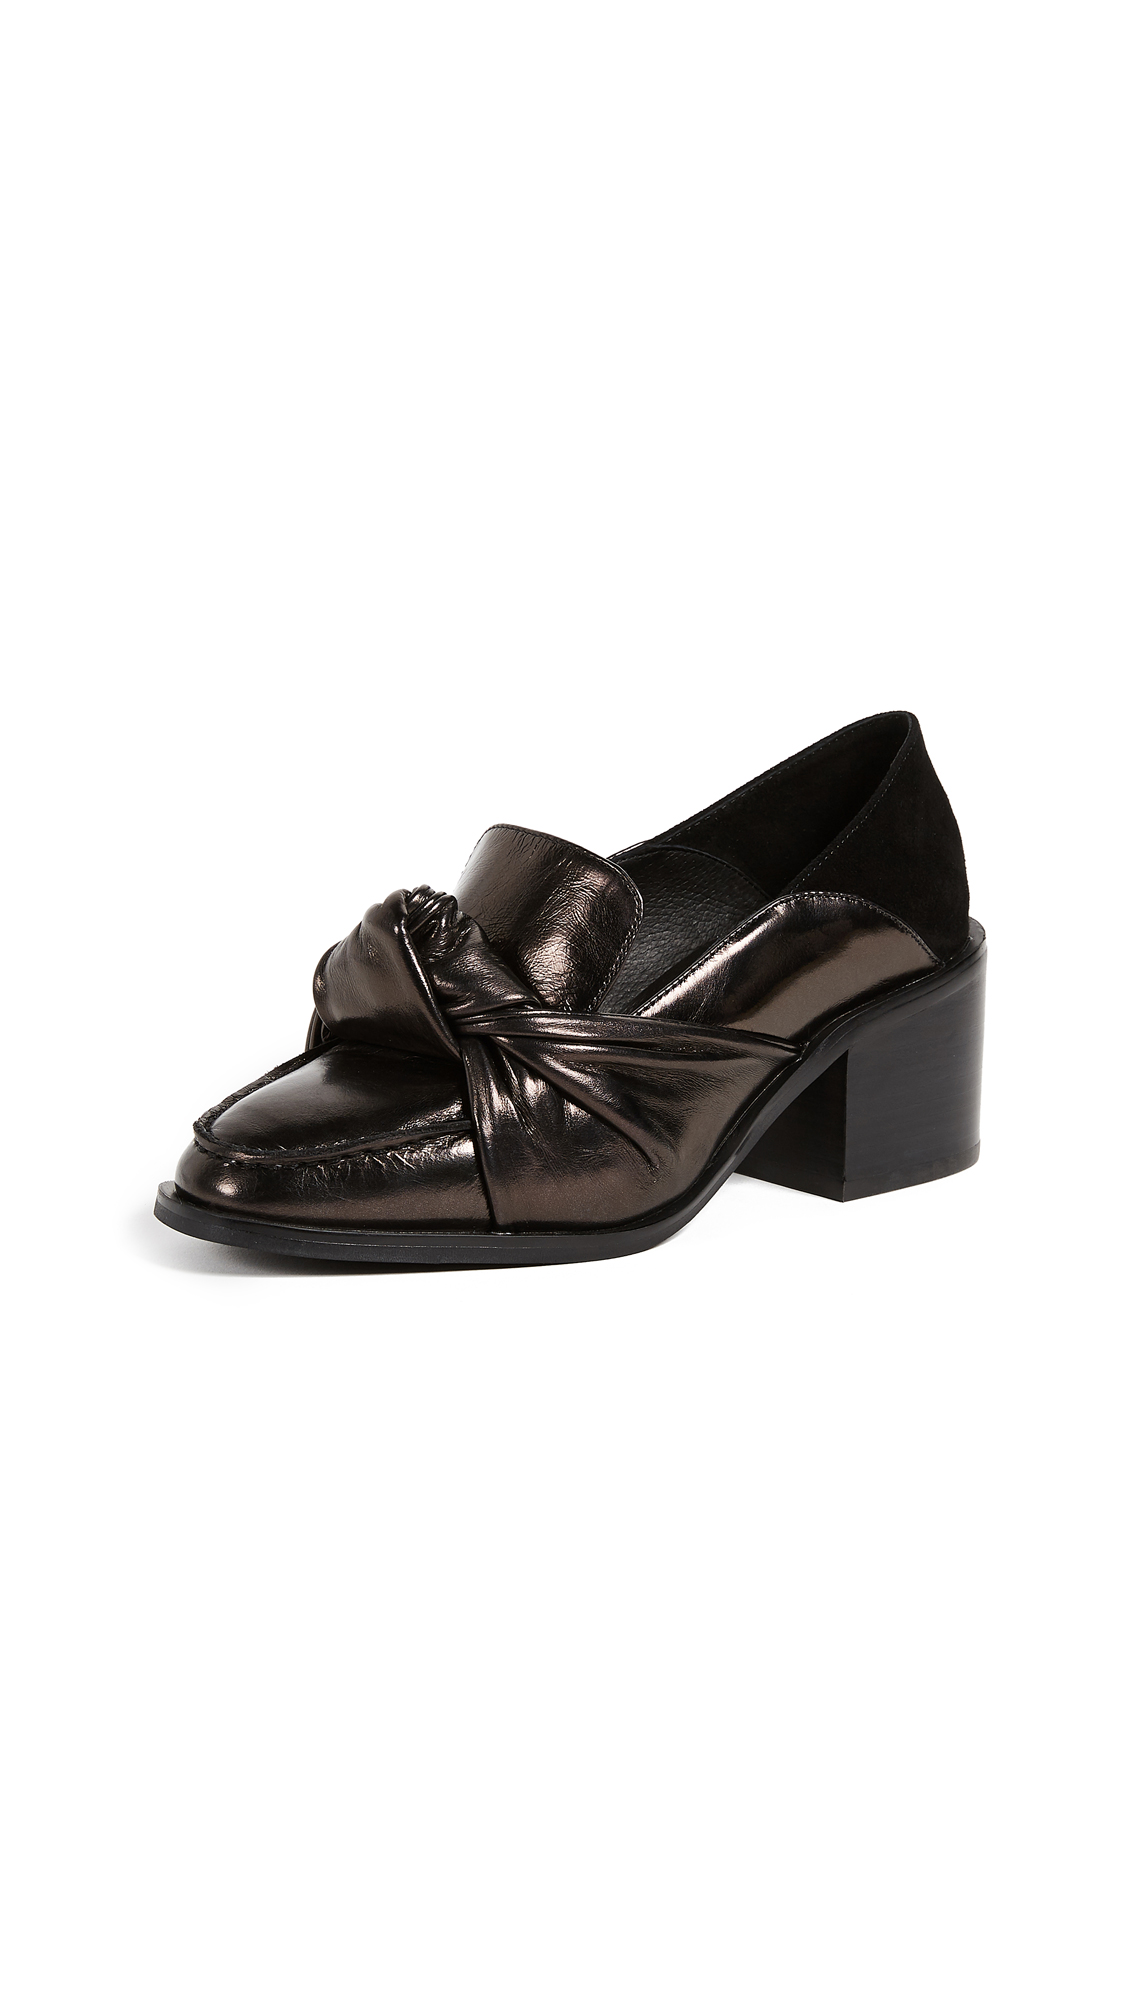 Jeffrey Campbell Bolero Pumps - Bronze/Black